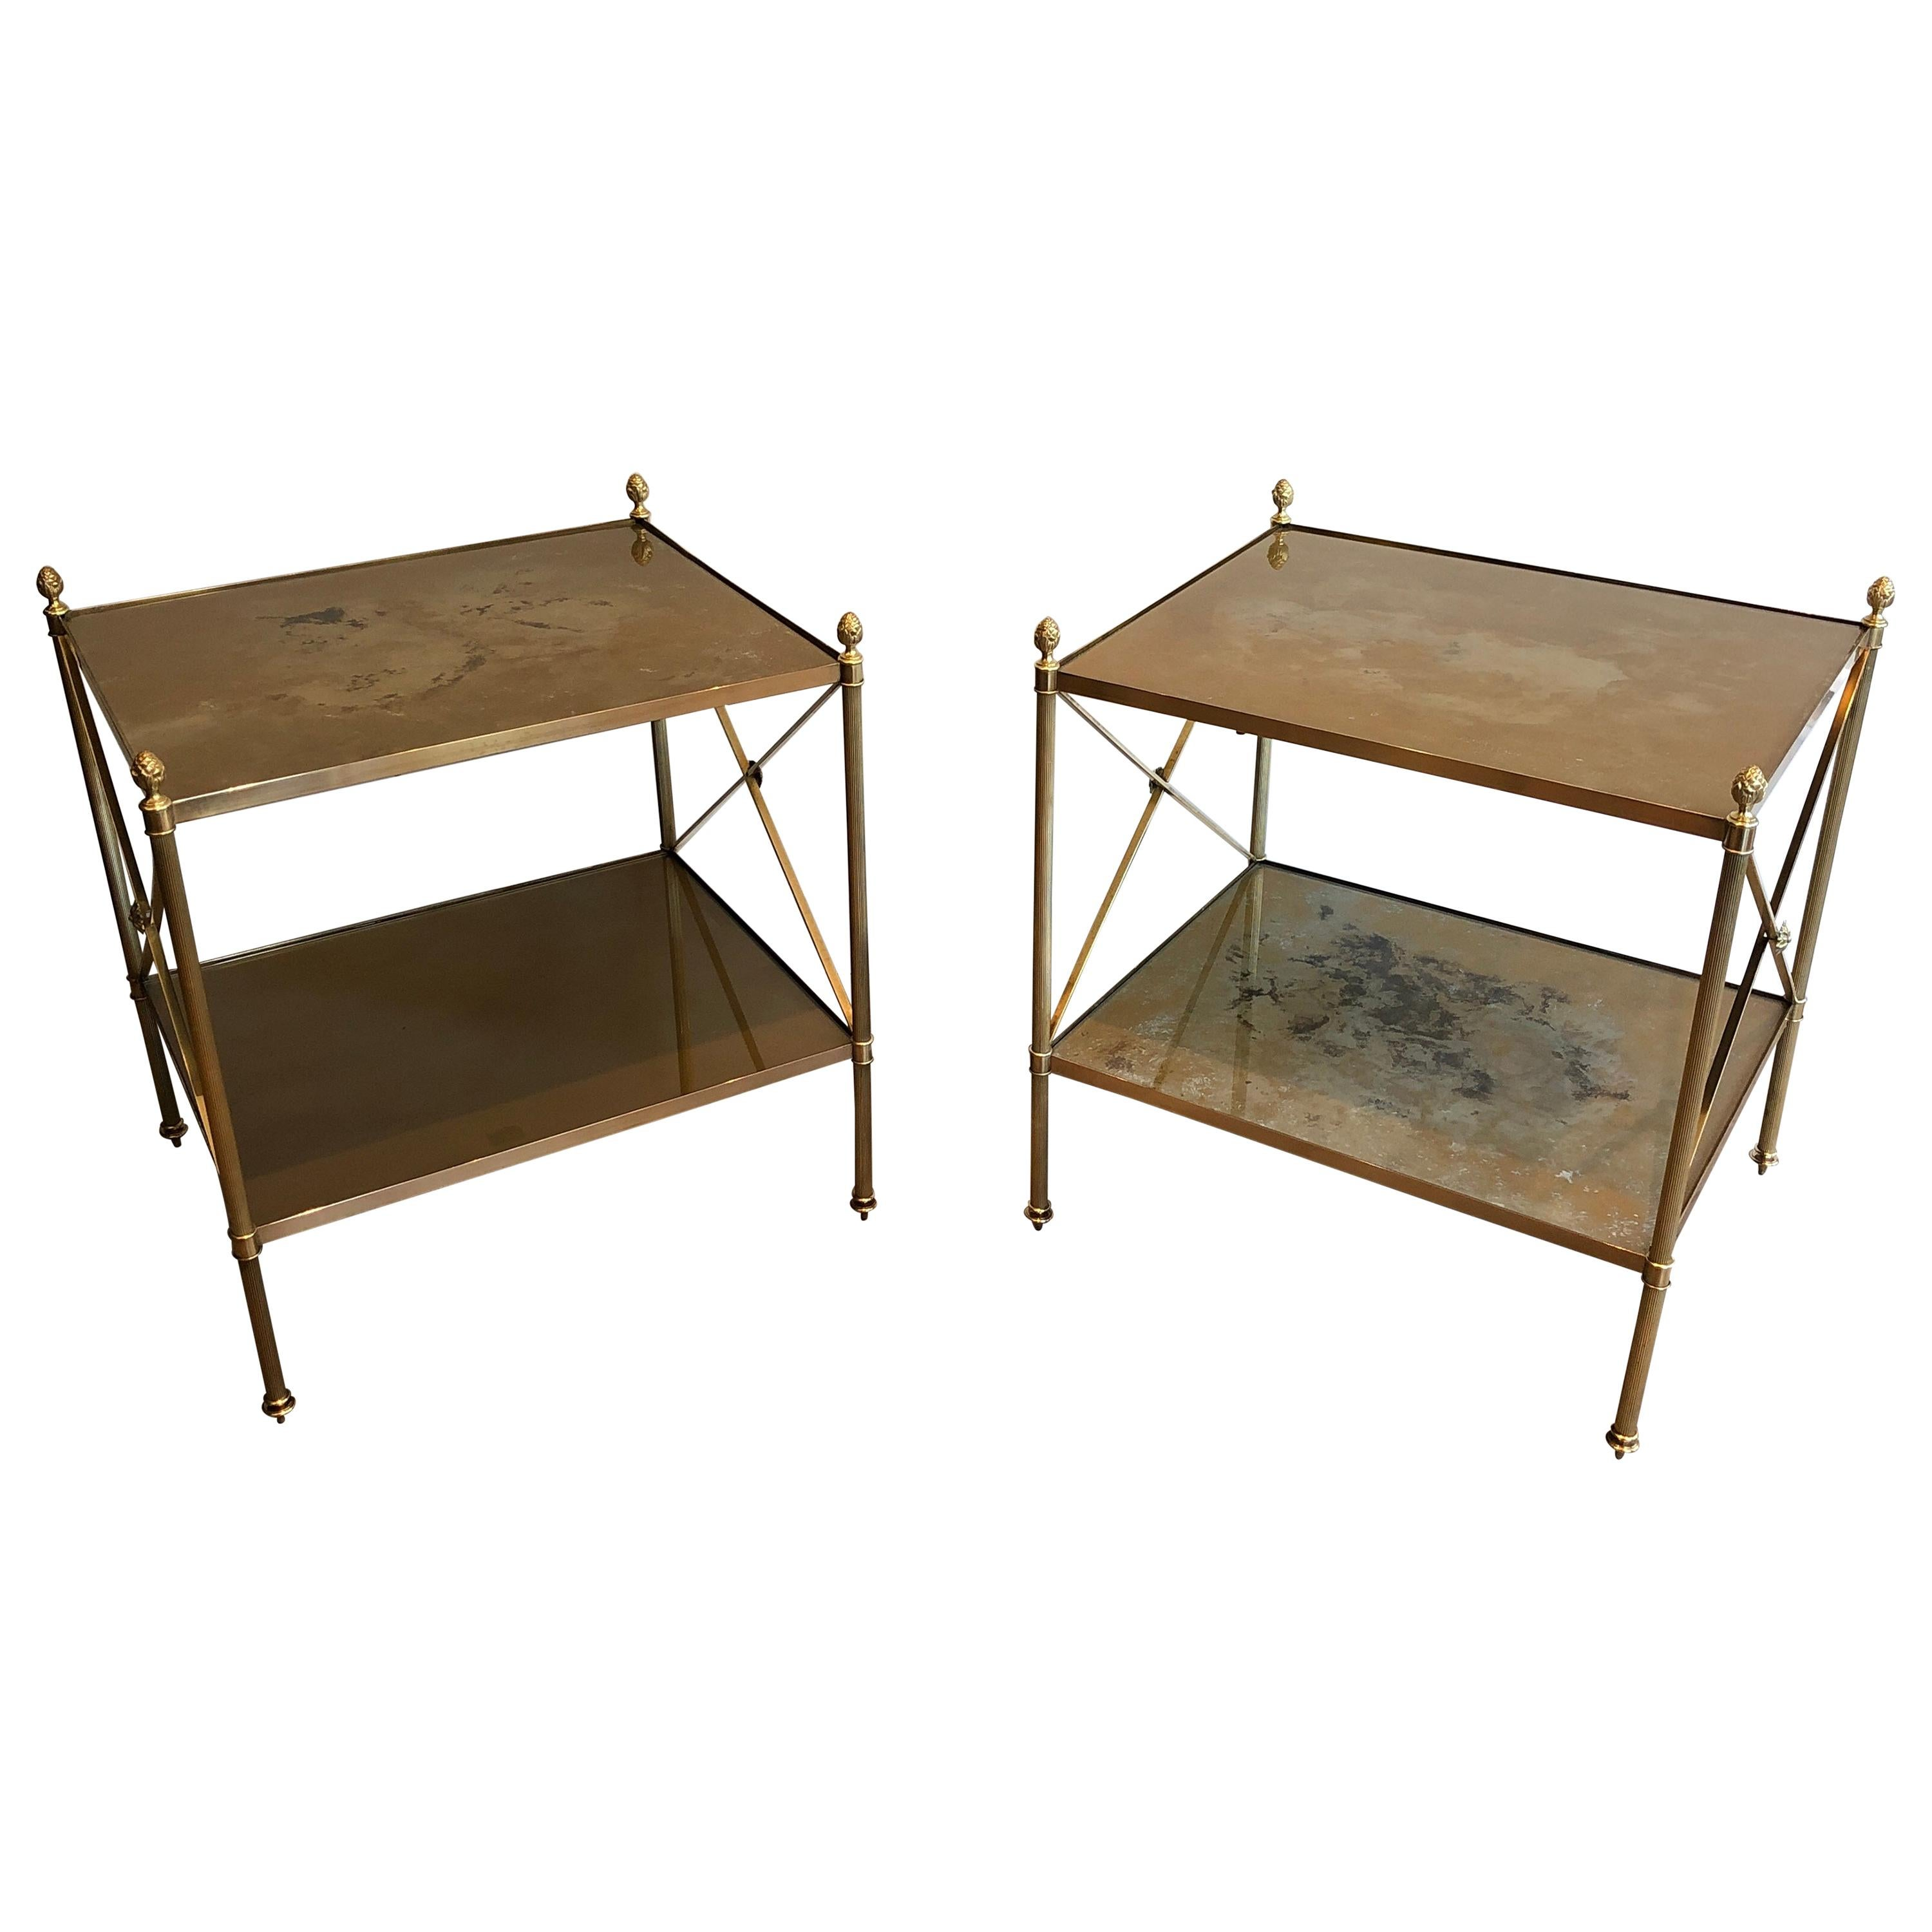 Maison Jansen, Pair of Neoclassical Style Brass Side Tables